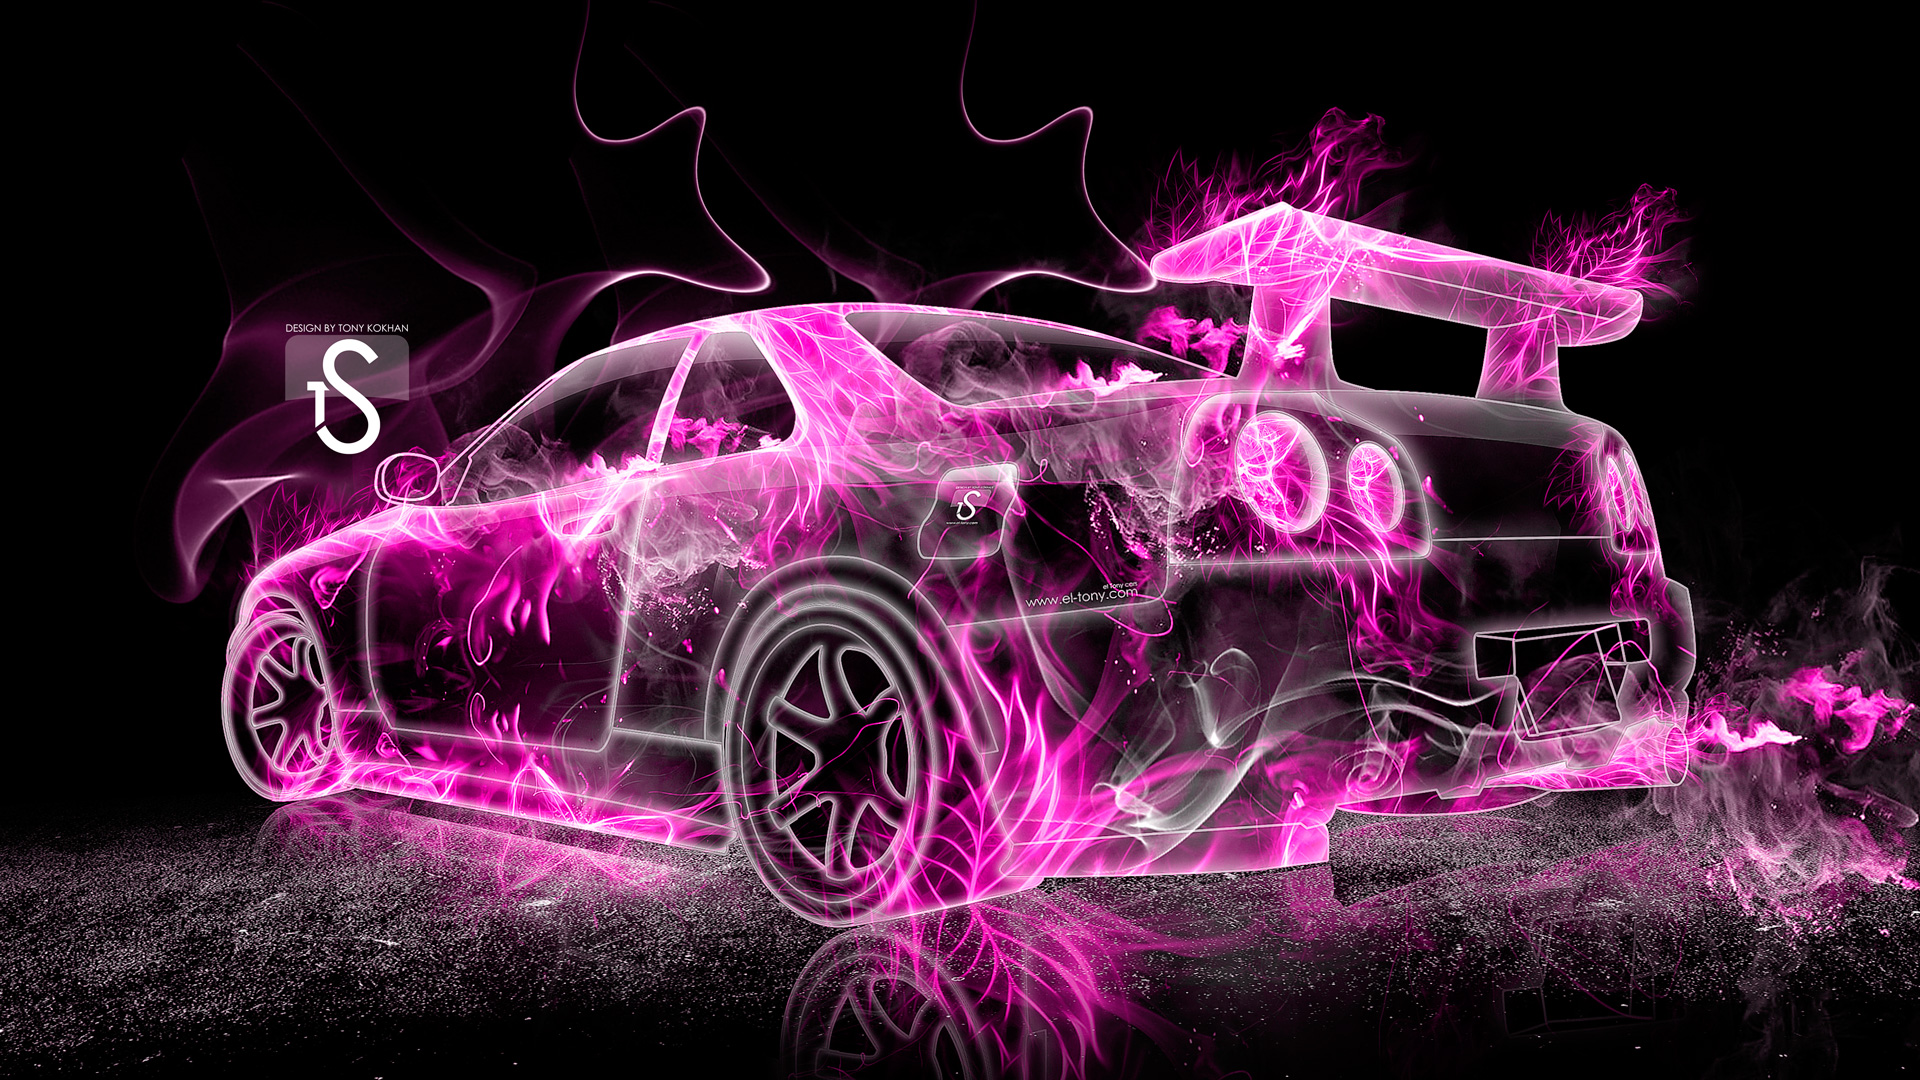 Superieur 1920x1080 Nissan Skyline GTR R34 Pink Fire Abstract Car 2013 HD  Wallpapers By .